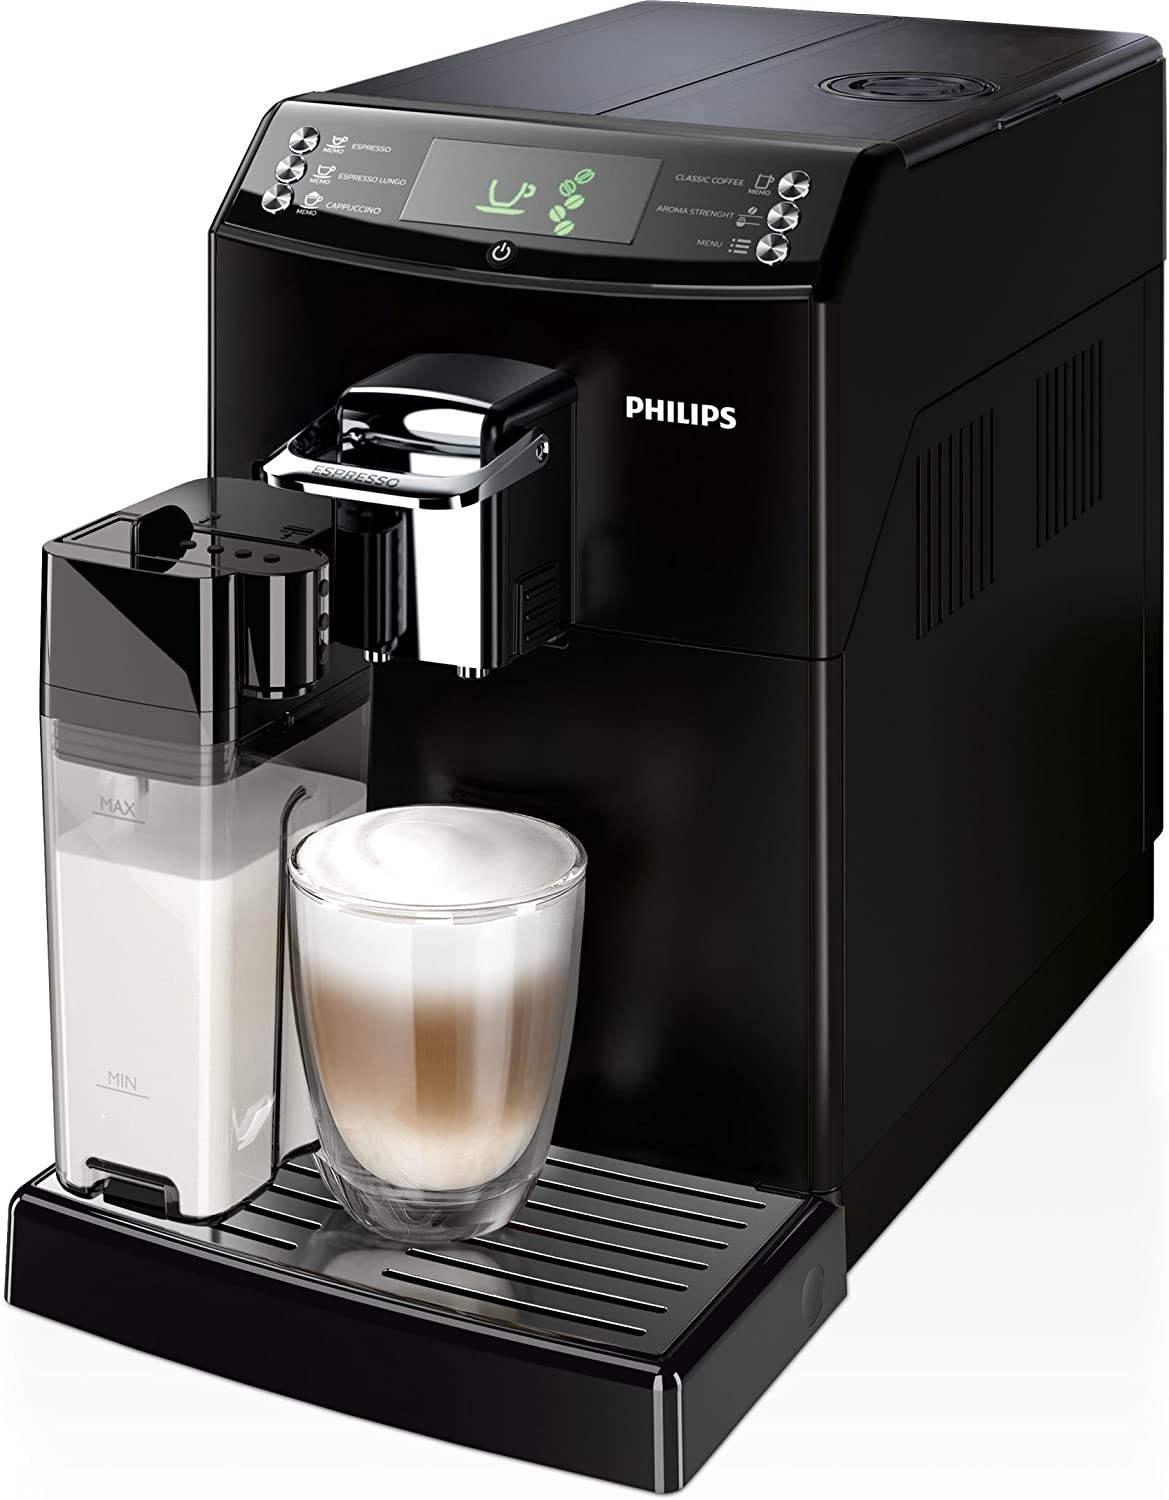 Philips 4000 series HD8847/09 - Cafetera (Independiente, Máquina espresso, 1,8 L, Molinillo integrado, 1850 W, Negro): Amazon.es: Hogar